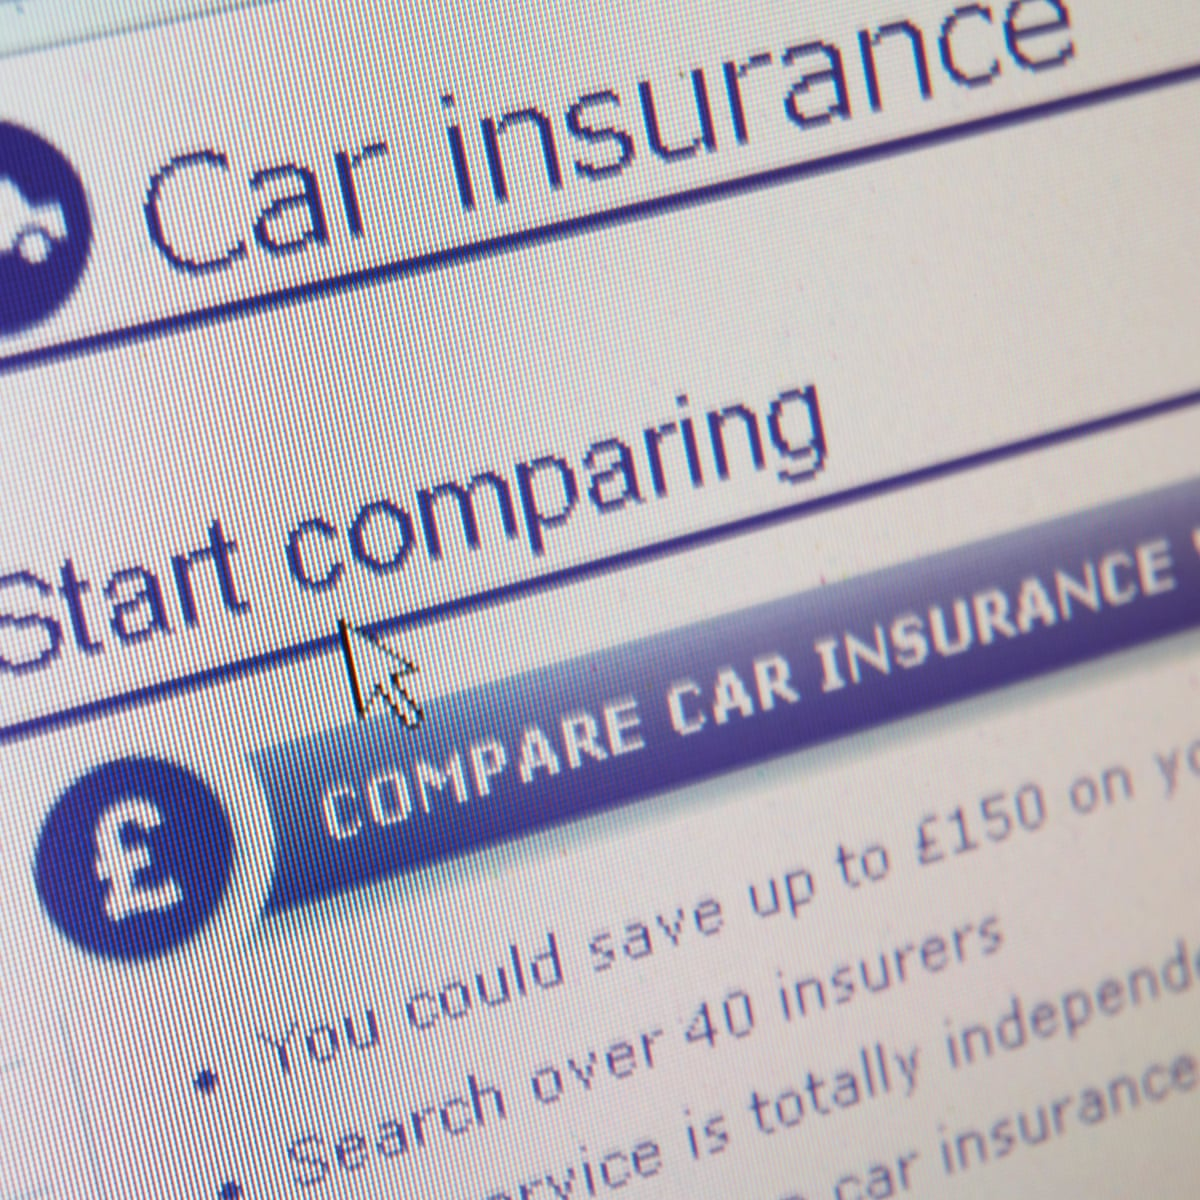 Renewing Your Car Insurance Best Policy Is To Avoid Saying